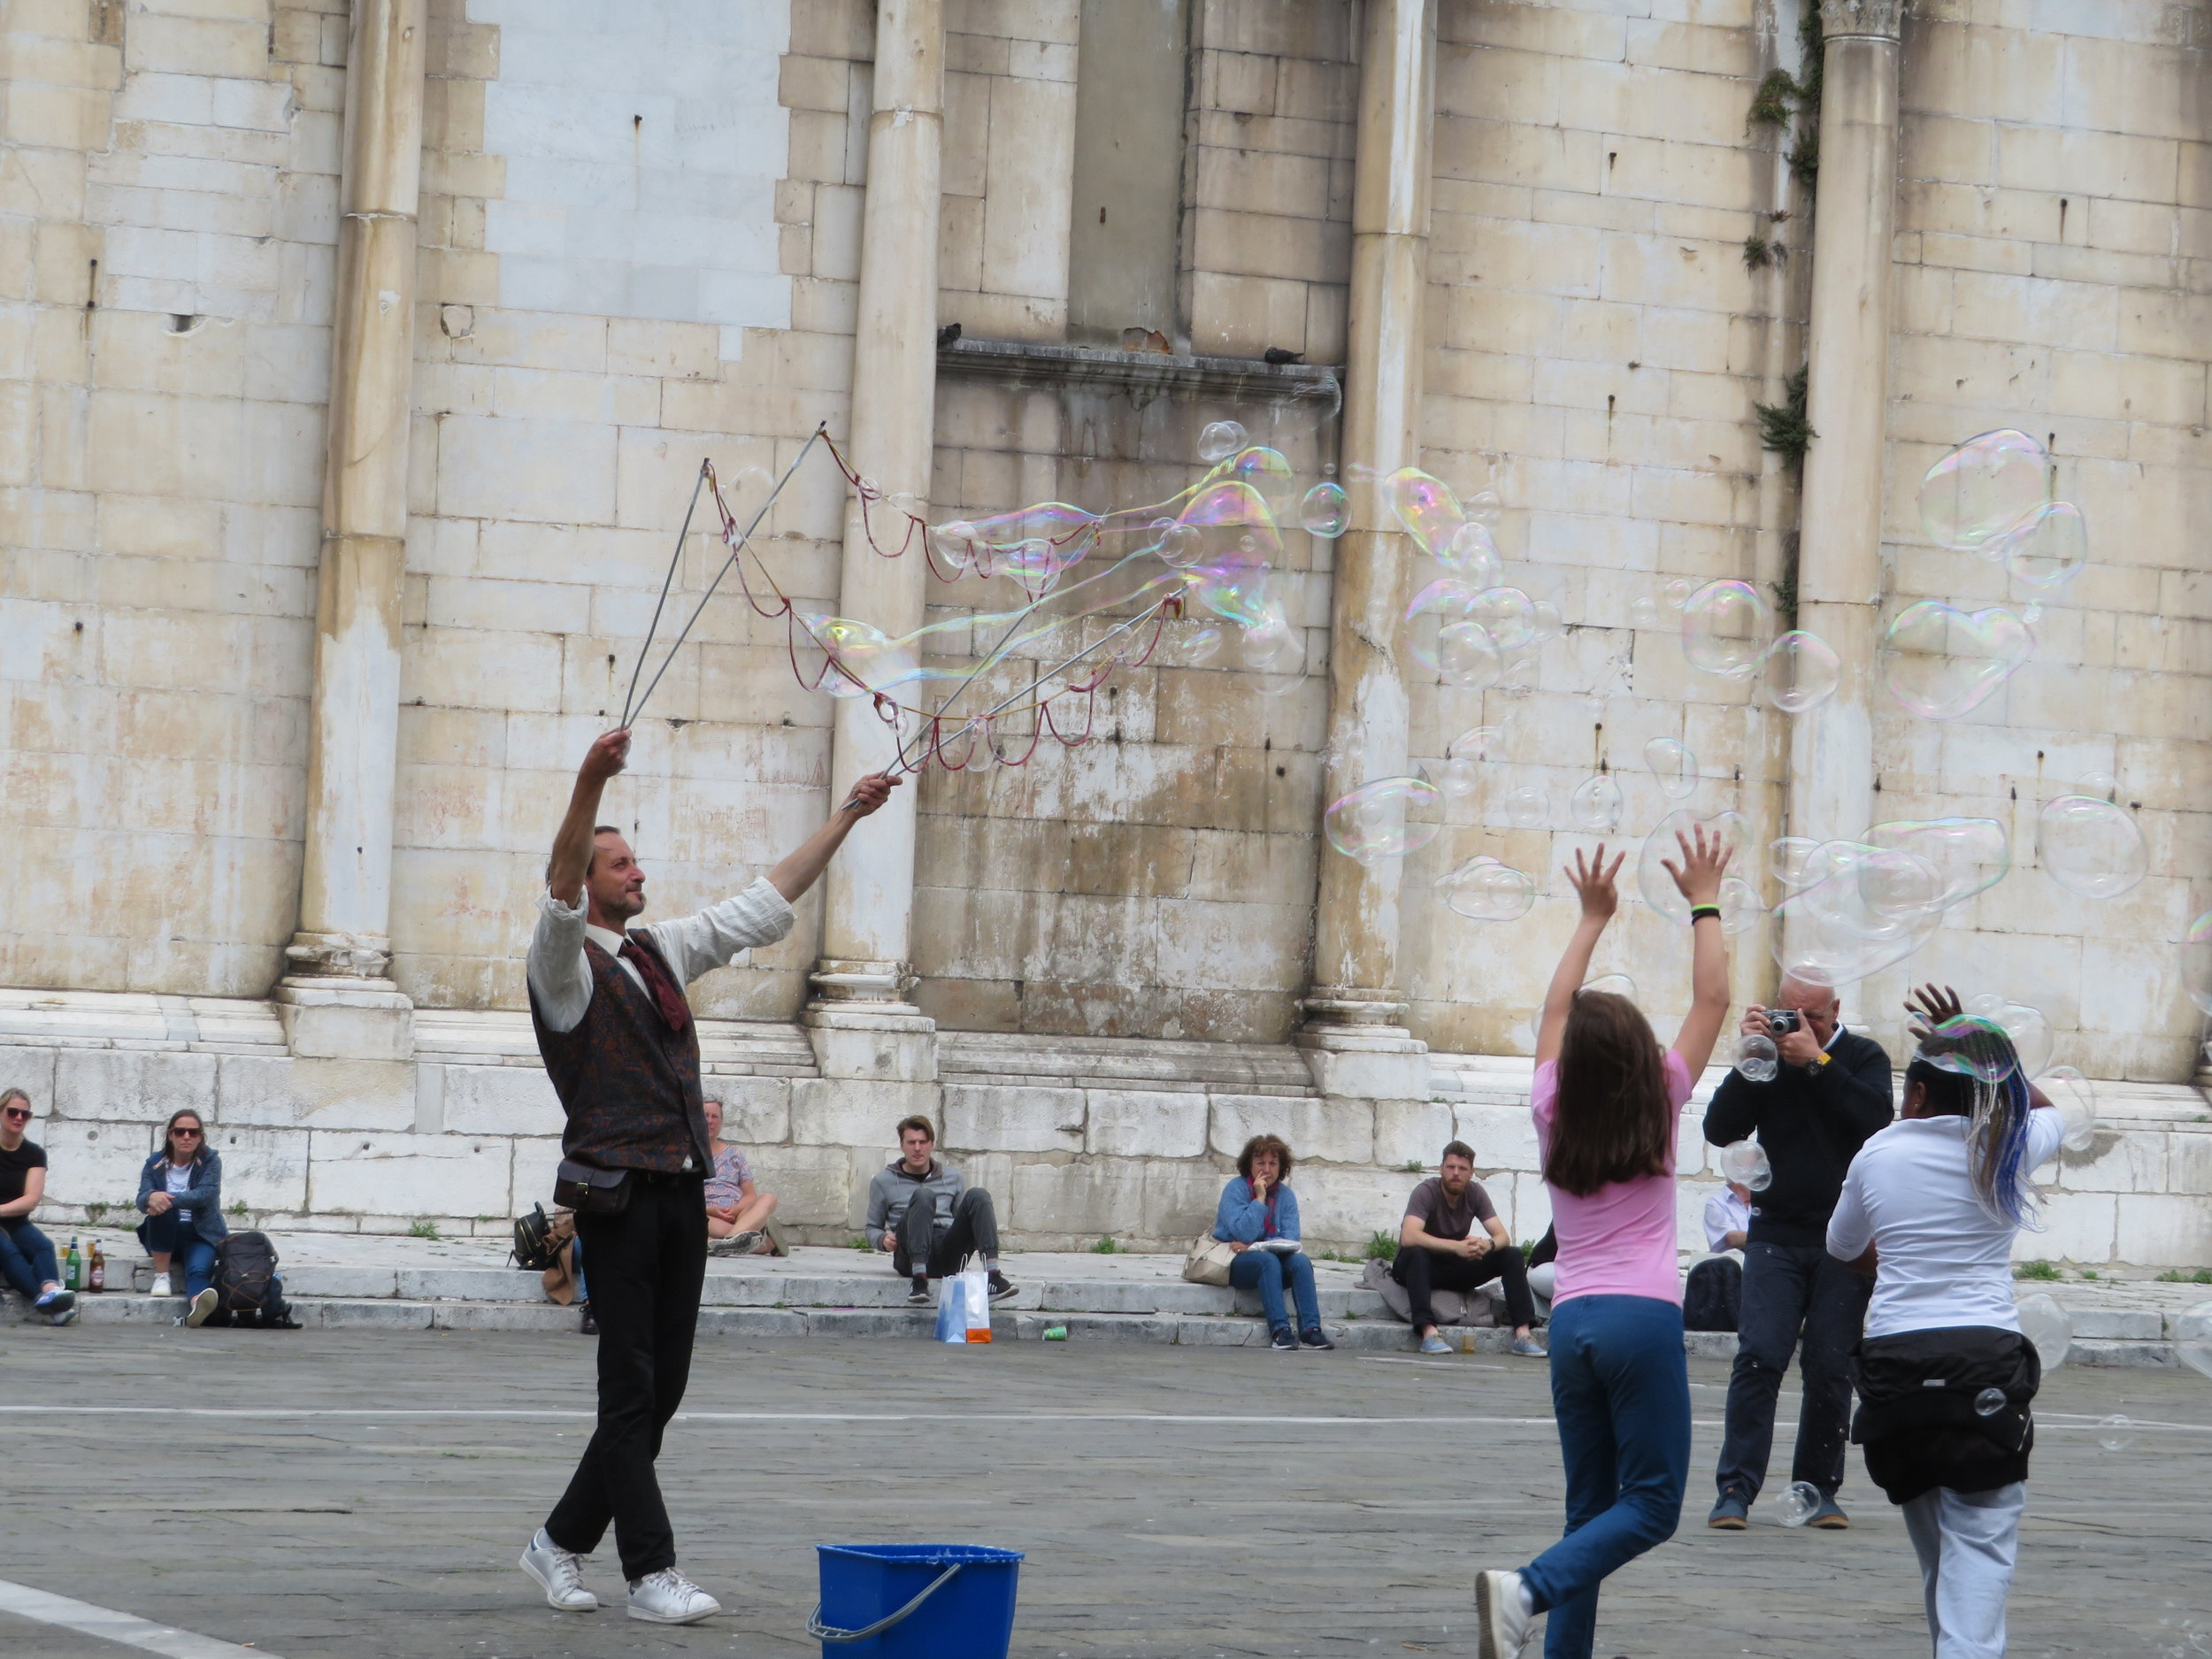 Bubble man in the piazza